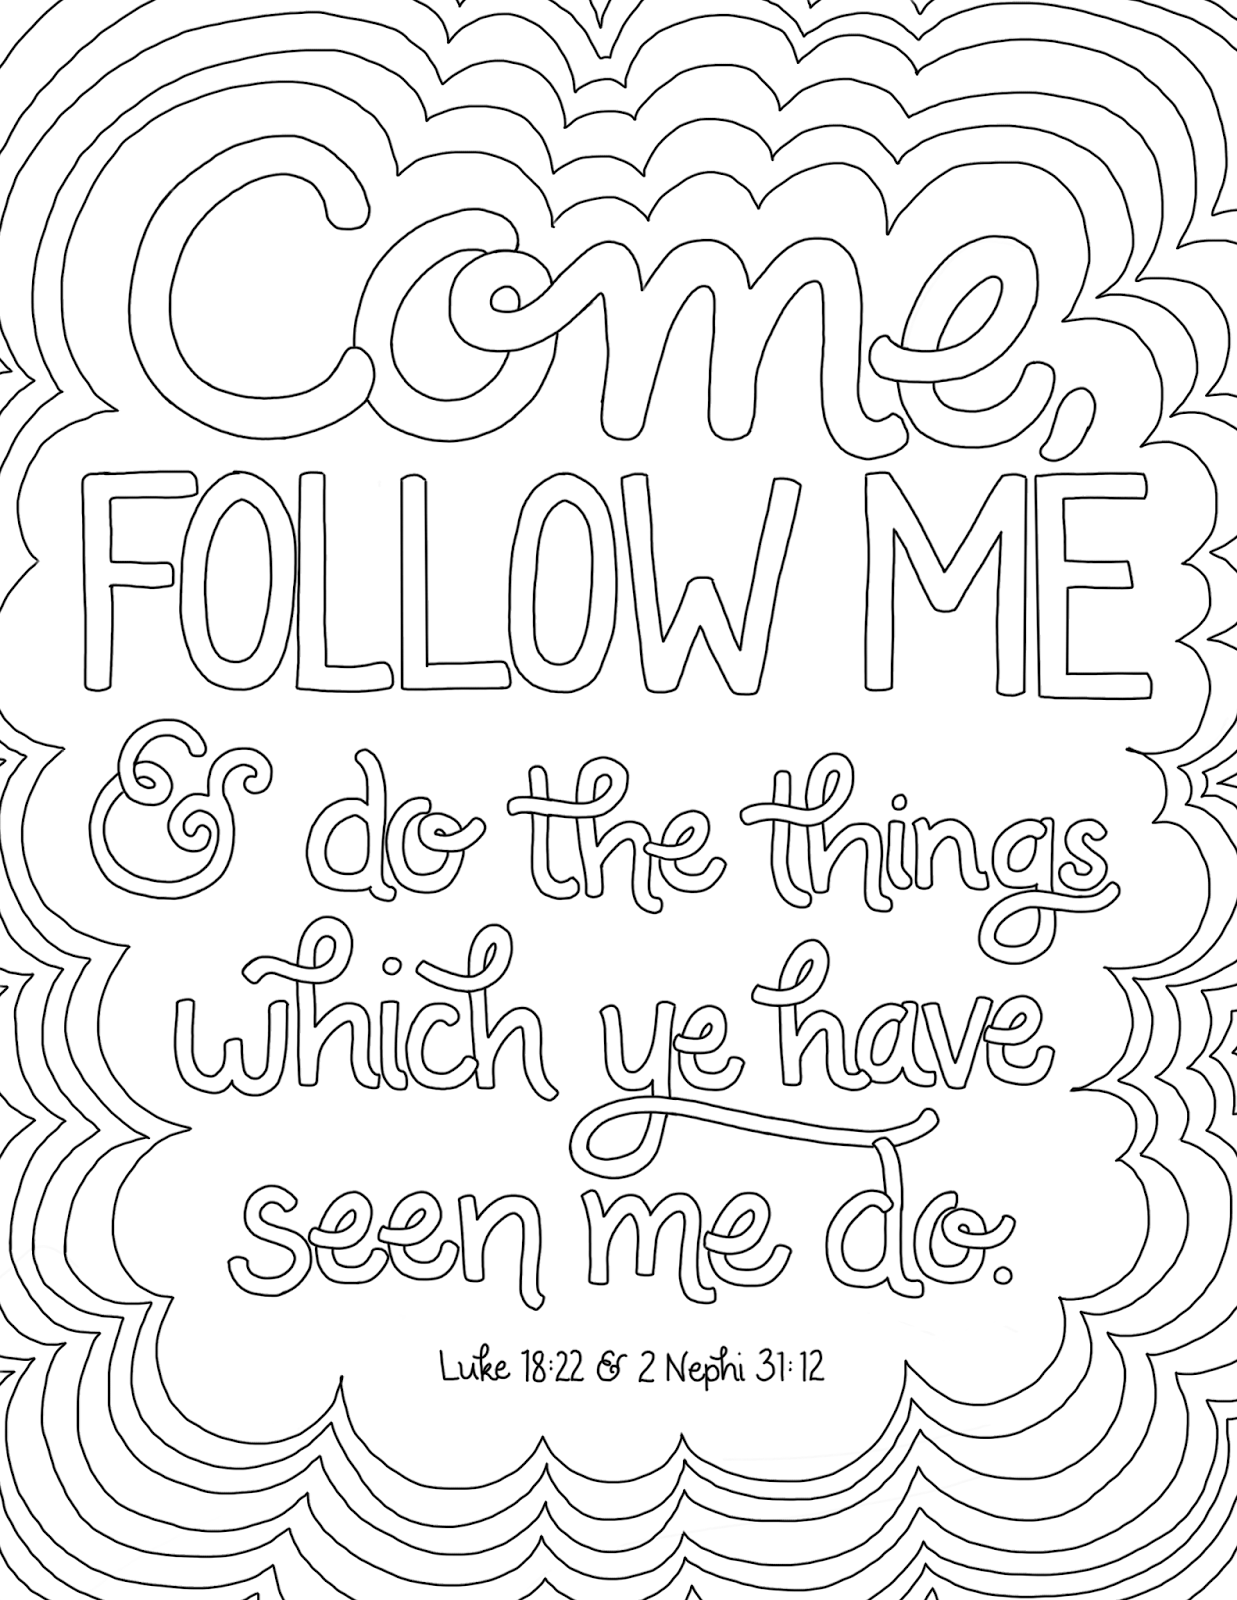 Come Follow Me Coloring Page